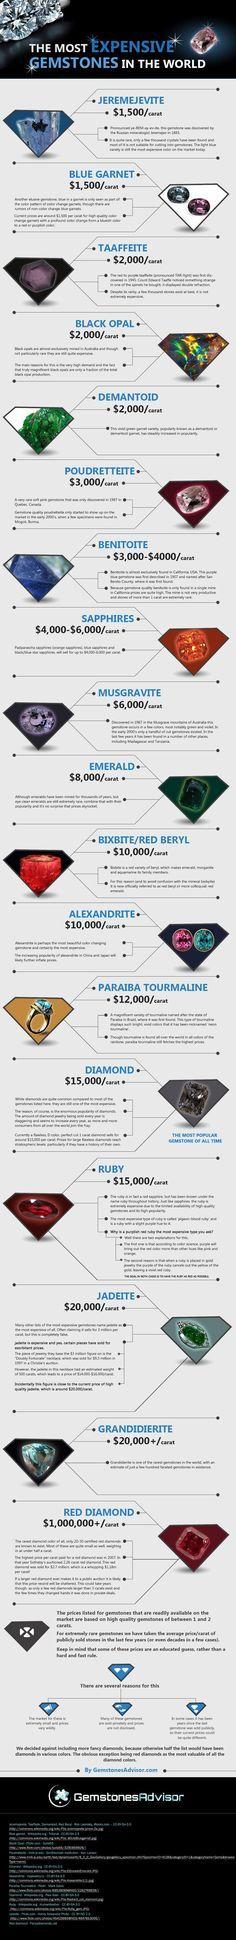 The Most Expensive Gemstones in the World Infographic - more on the site.